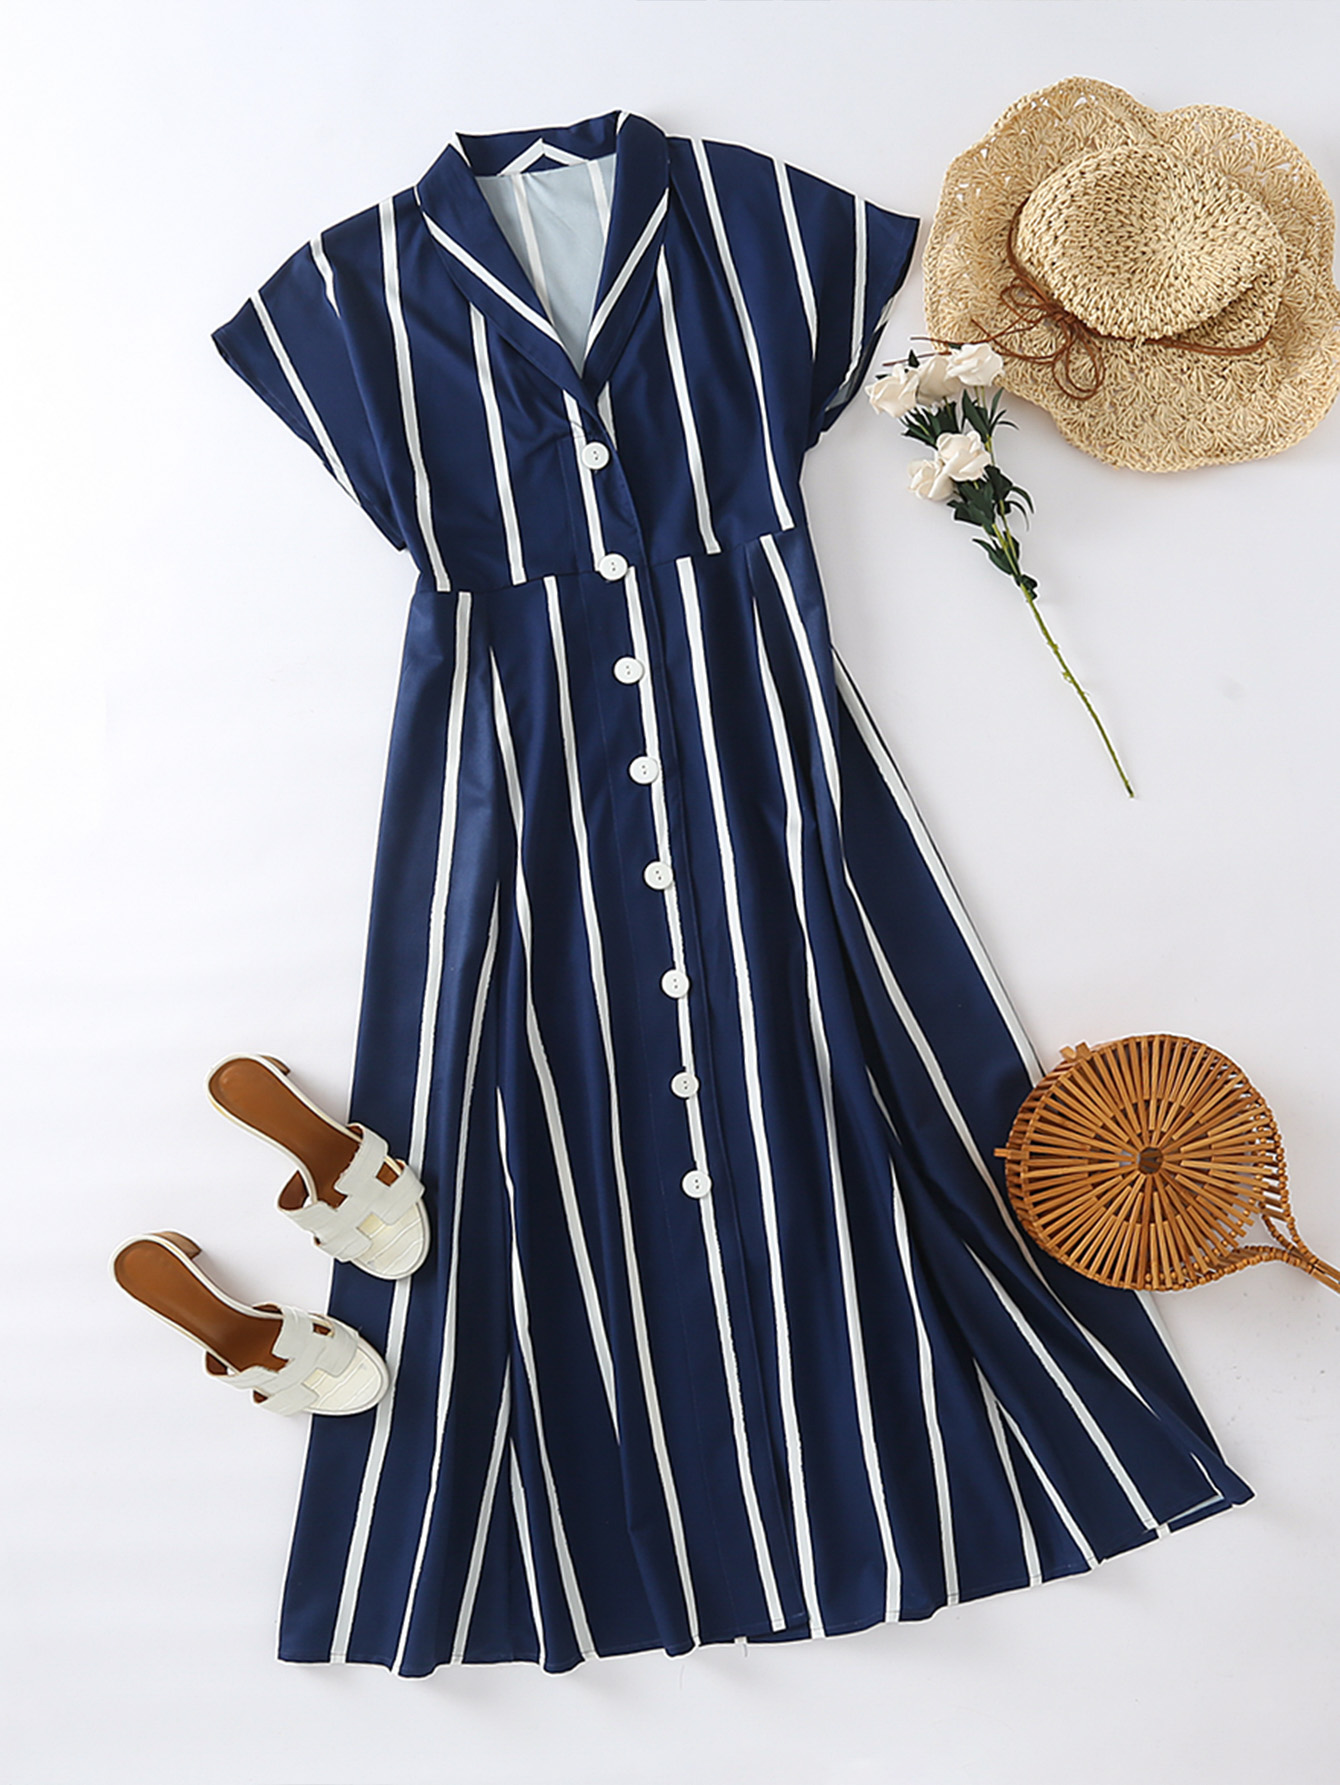 2020 new European and American striped shirt dress with V-neck showing thin waist, dark light cooked net red popular French style